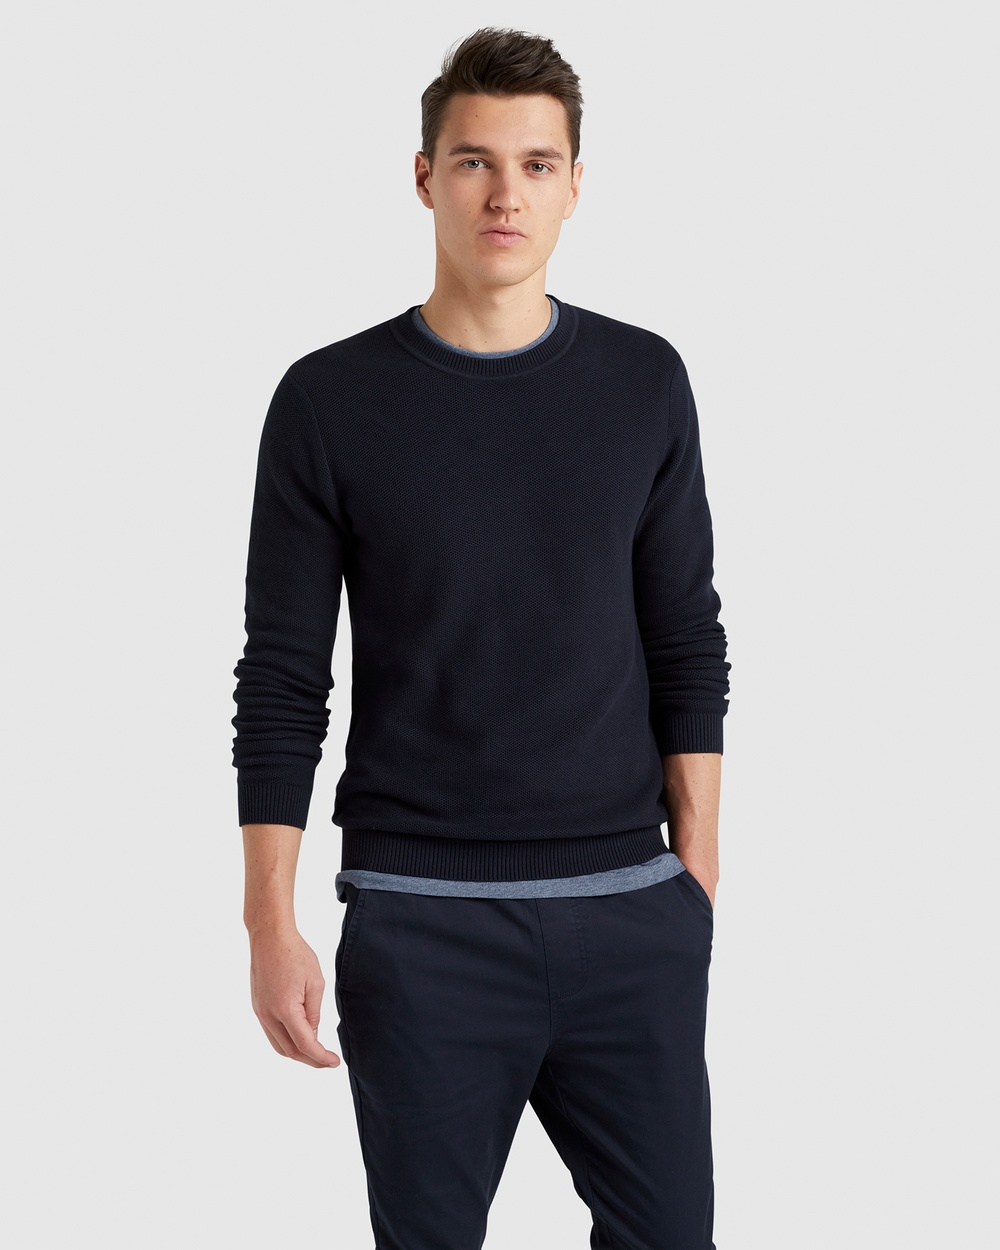 French Connection Cotton Knit Jumpers & Cardigans MARINE BLUE Australia